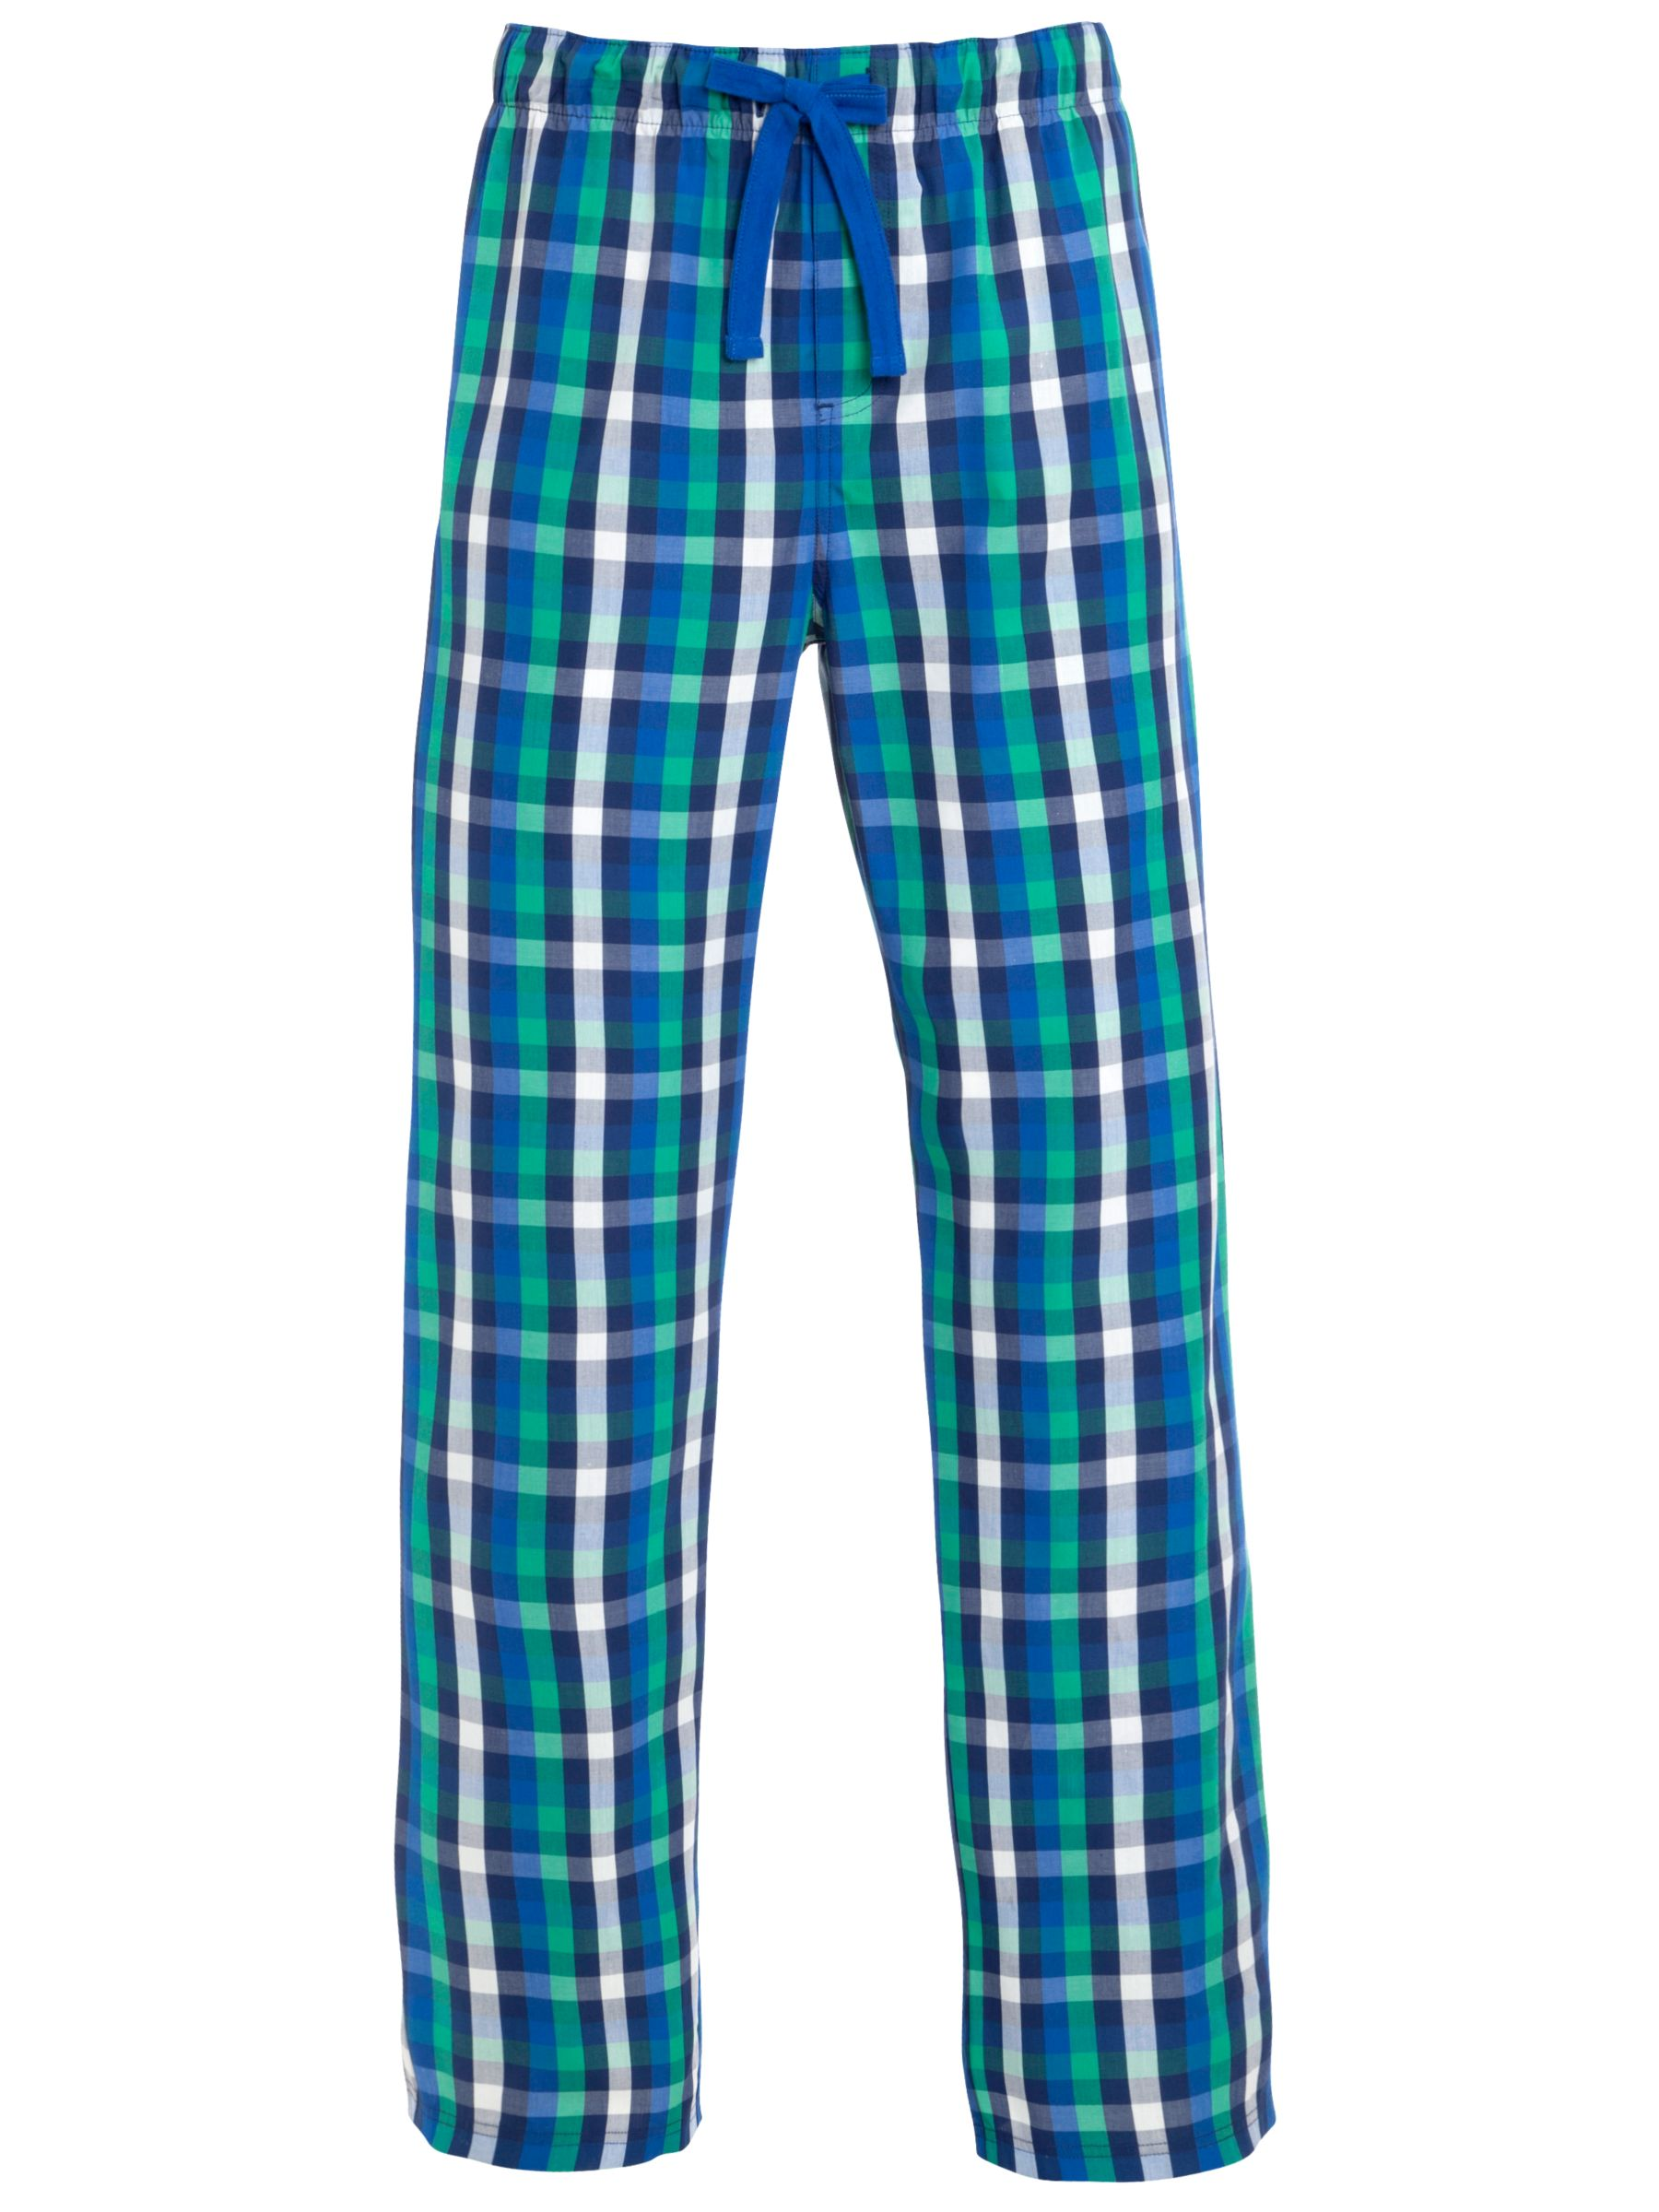 John Lewis Woven Gingham Check Lounge Pants